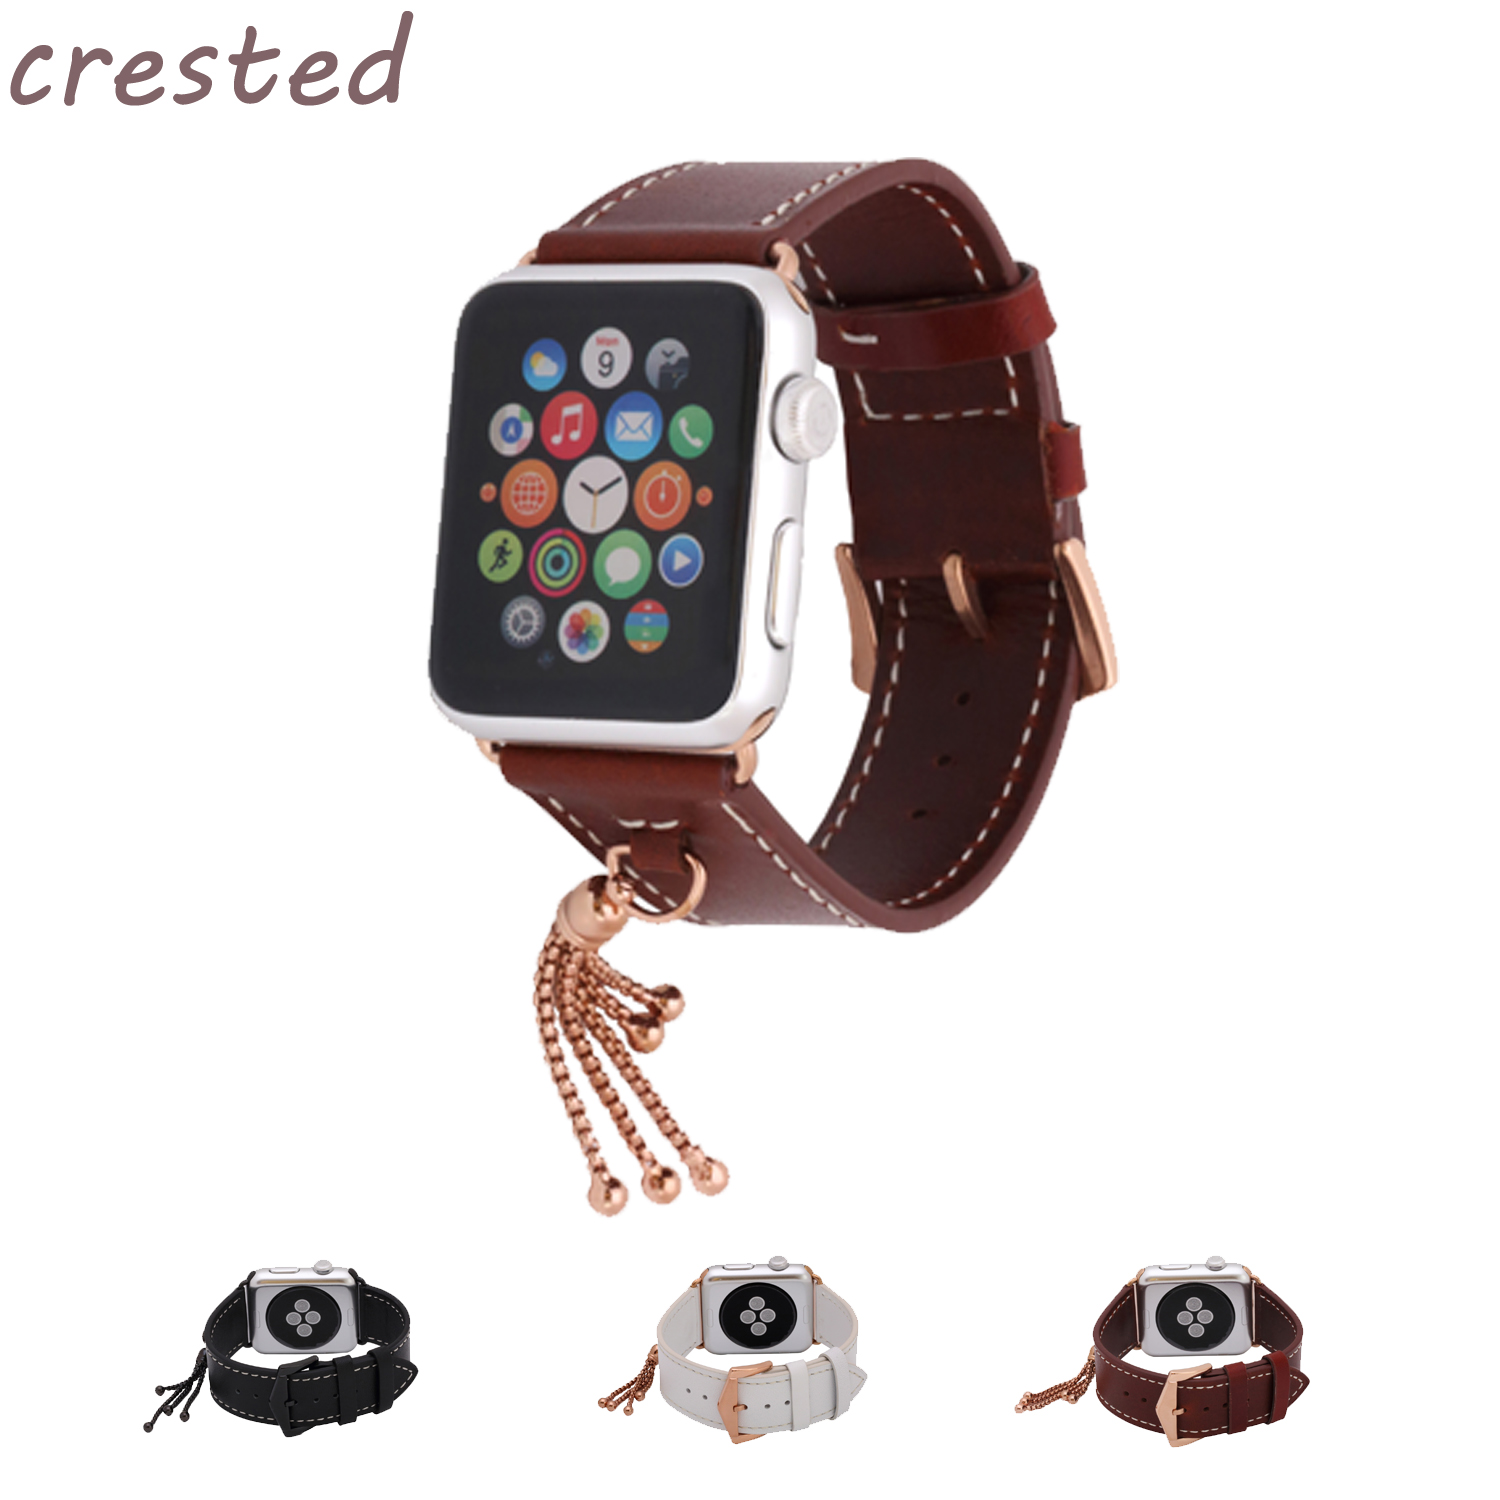 CRESTED genuine leather strap for apple watch band 42mm/38 Ornaments bracelet belt leather band for iwatch serise 1 2 3 strap woven canvas casual sports watch band iwatch strap genuine leather watch belt for apple watch